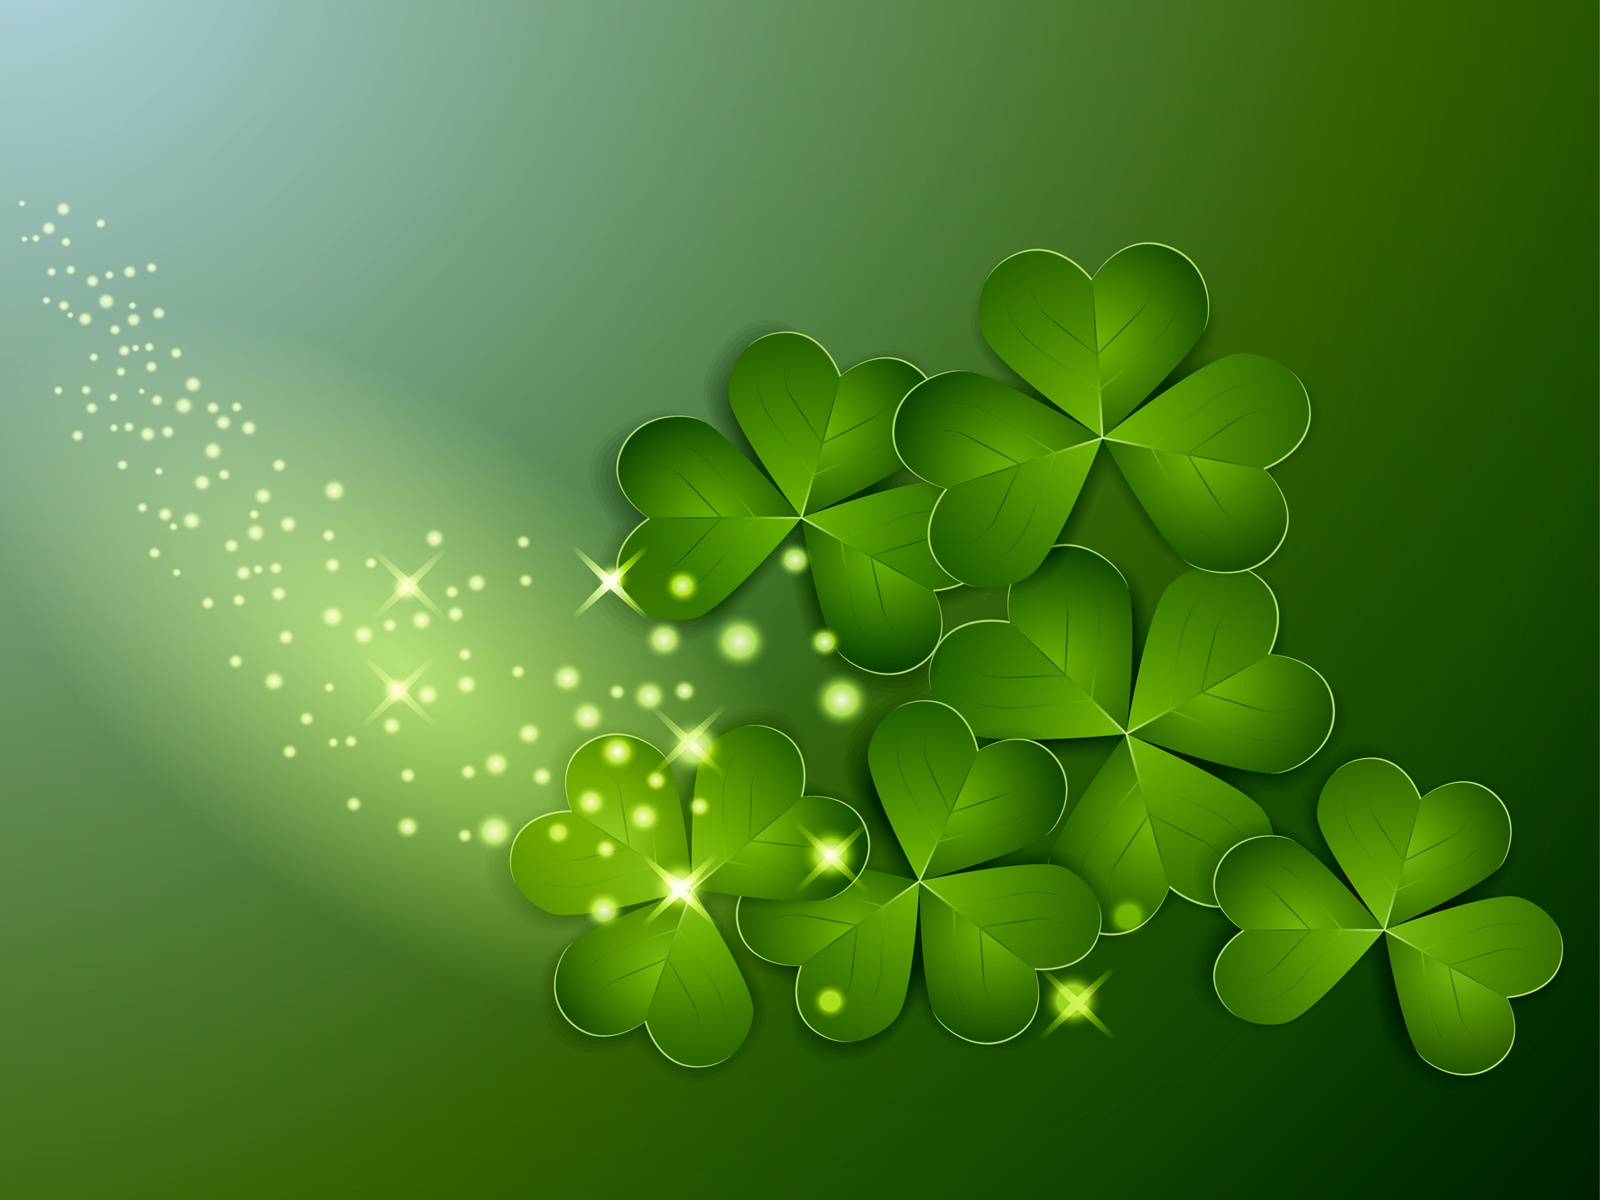 St Patrick's Day Wallpaper - Miscellaneous Photos and Wallpapers ...